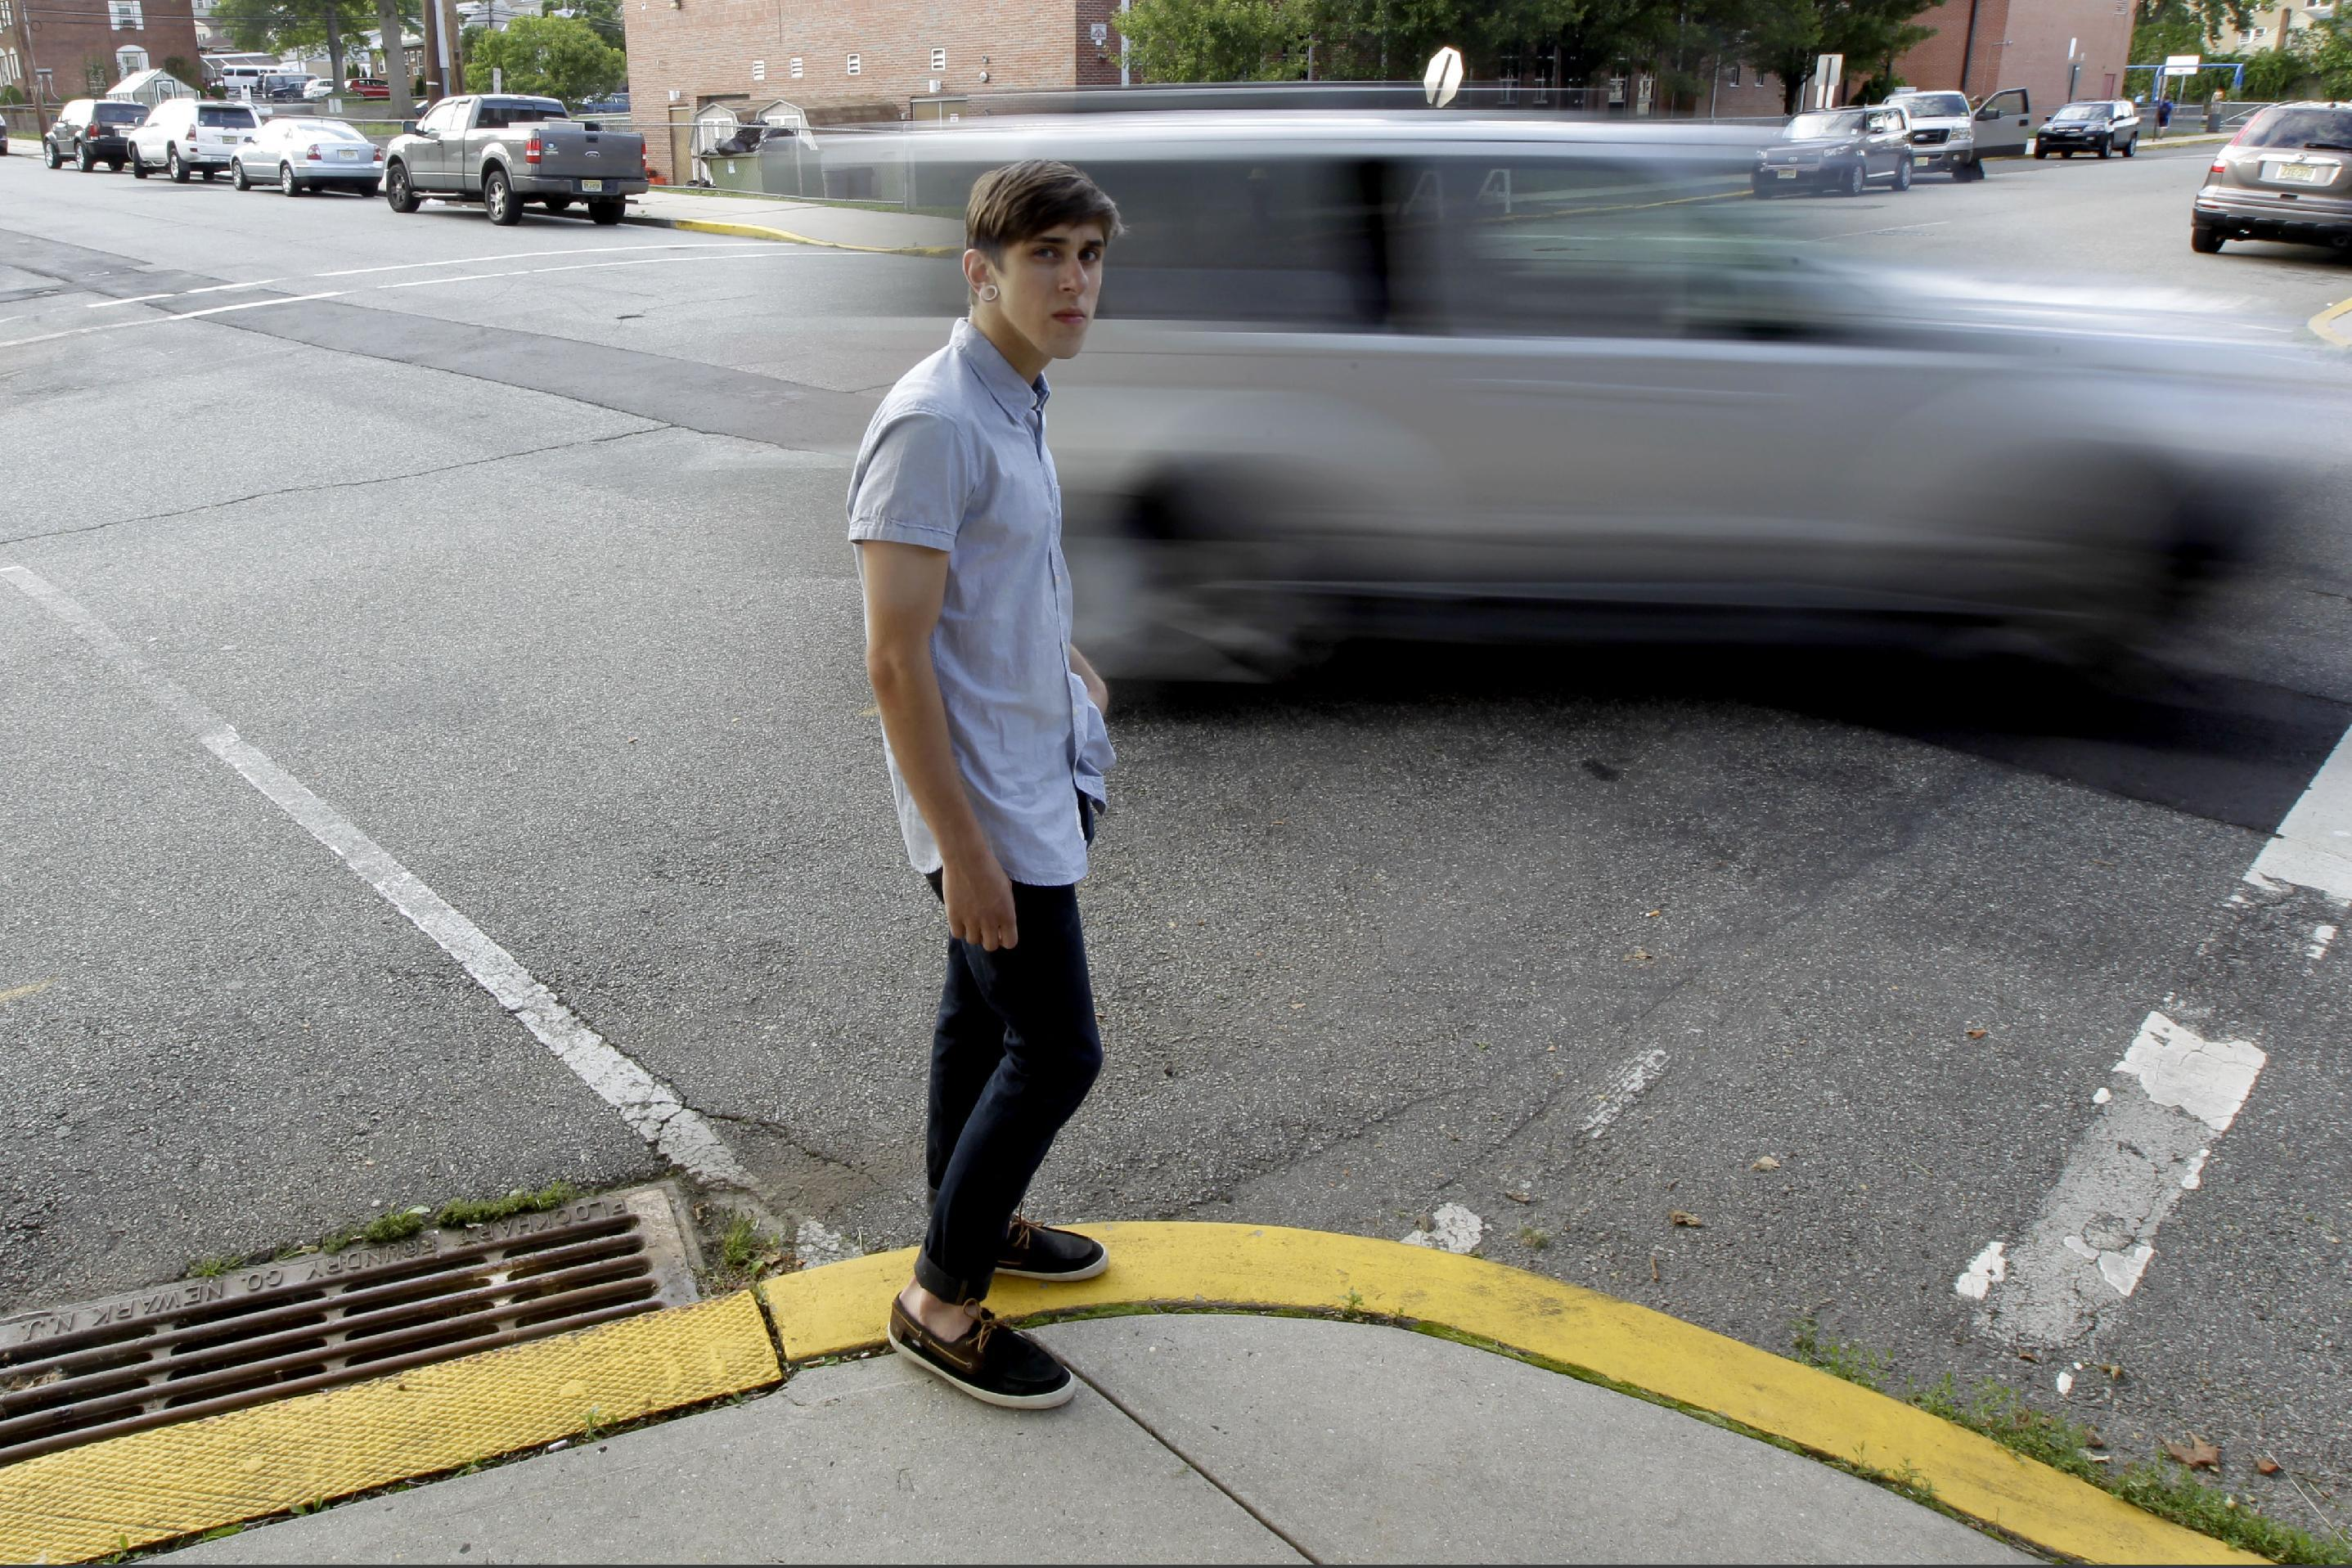 Dylan Young, 18, poses for The Associated Press as a vehicle cruises by, Wednesday, June 6, 2012, in North Arlington, N.J. Young, a senior at North Arlington High, was in a fender-bender accident caused by being distracted while texting and driving. More than half of high school seniors say they text or email while driving, according to a jarring new study that offers the first federal statistics on how common the dangerous habit is in teens. The Centers for Disease Control and Prevention released the numbers Thursday, June 7, 2012. They come from a 2011 survey of about 15,000 high school students across the country. The study found 58 percent of high school seniors said that, in the previous month, they had texted or emailed while driving. (AP Photo/Julio Cortez)